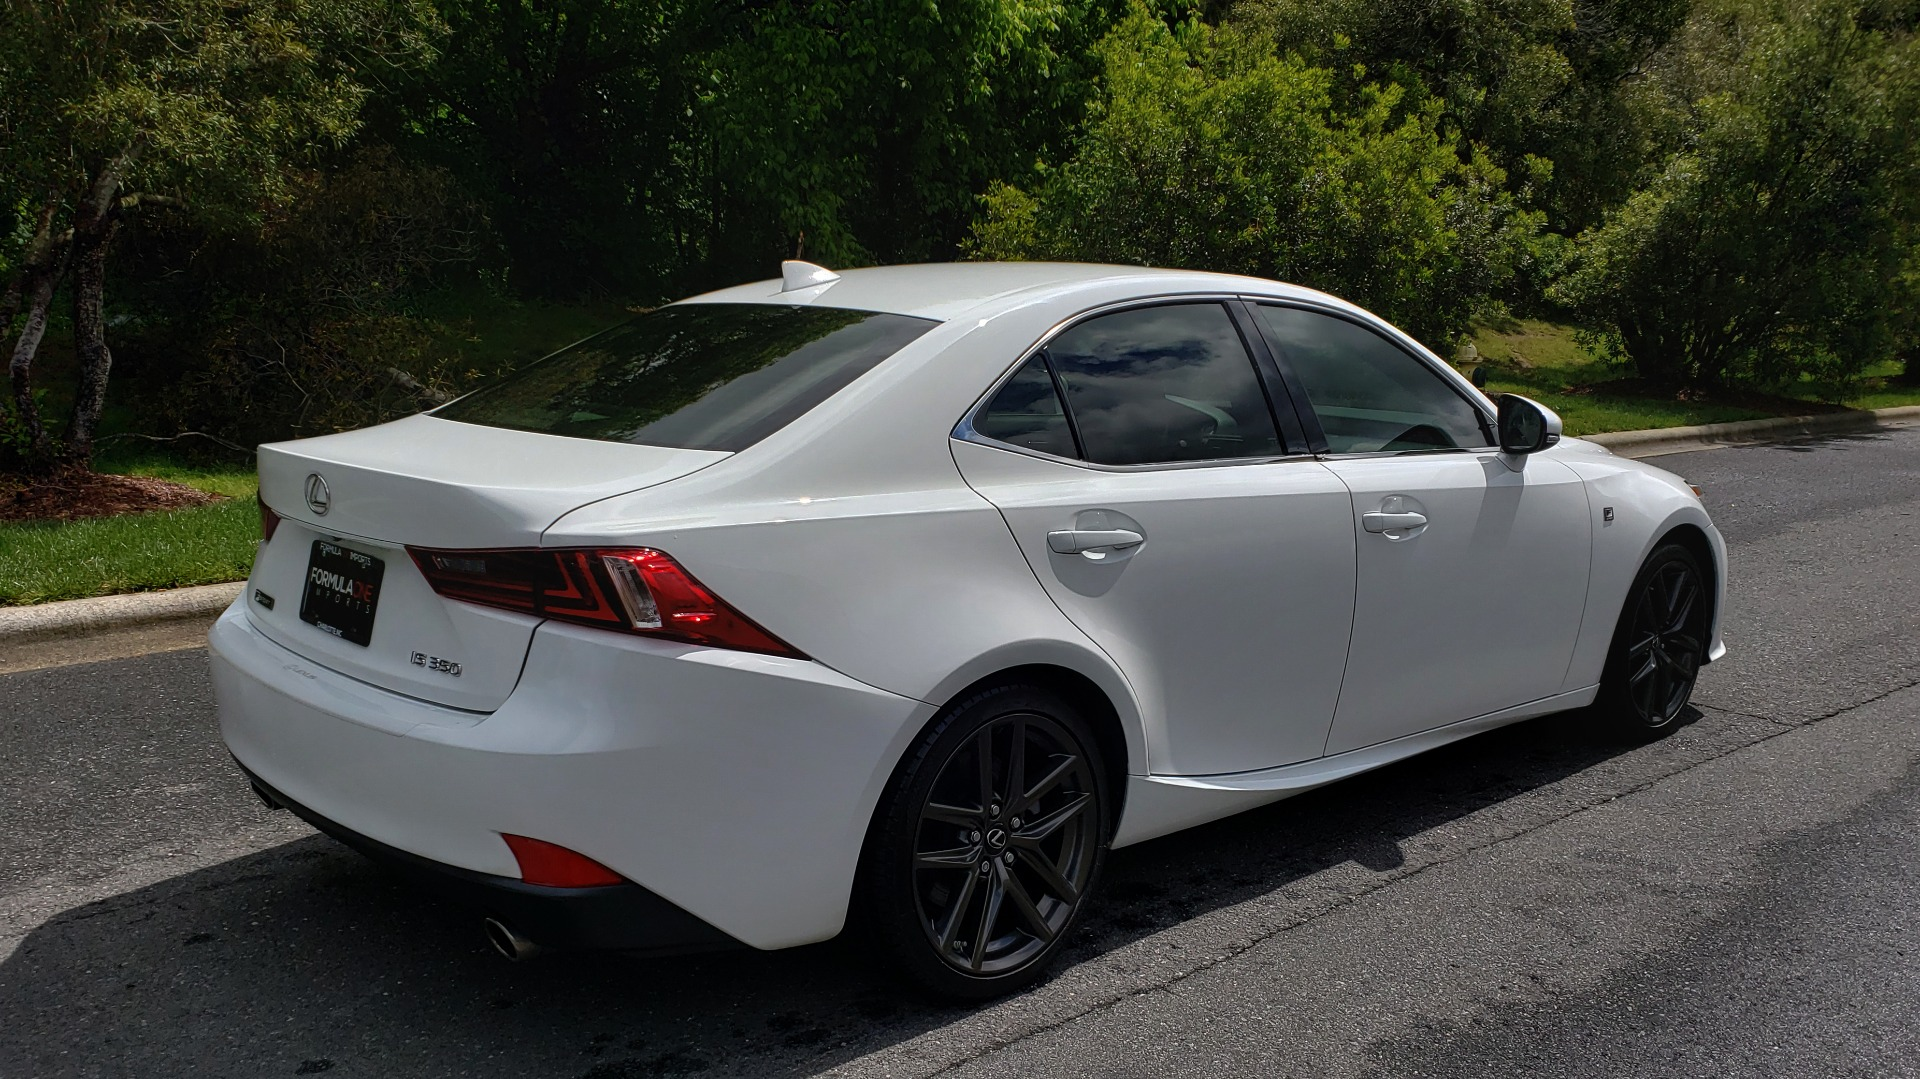 Used 2014 Lexus IS 350 F-SPORT / NAV / SUNROOF / REARVIEW / BSM / MARK LEV SND for sale Sold at Formula Imports in Charlotte NC 28227 6